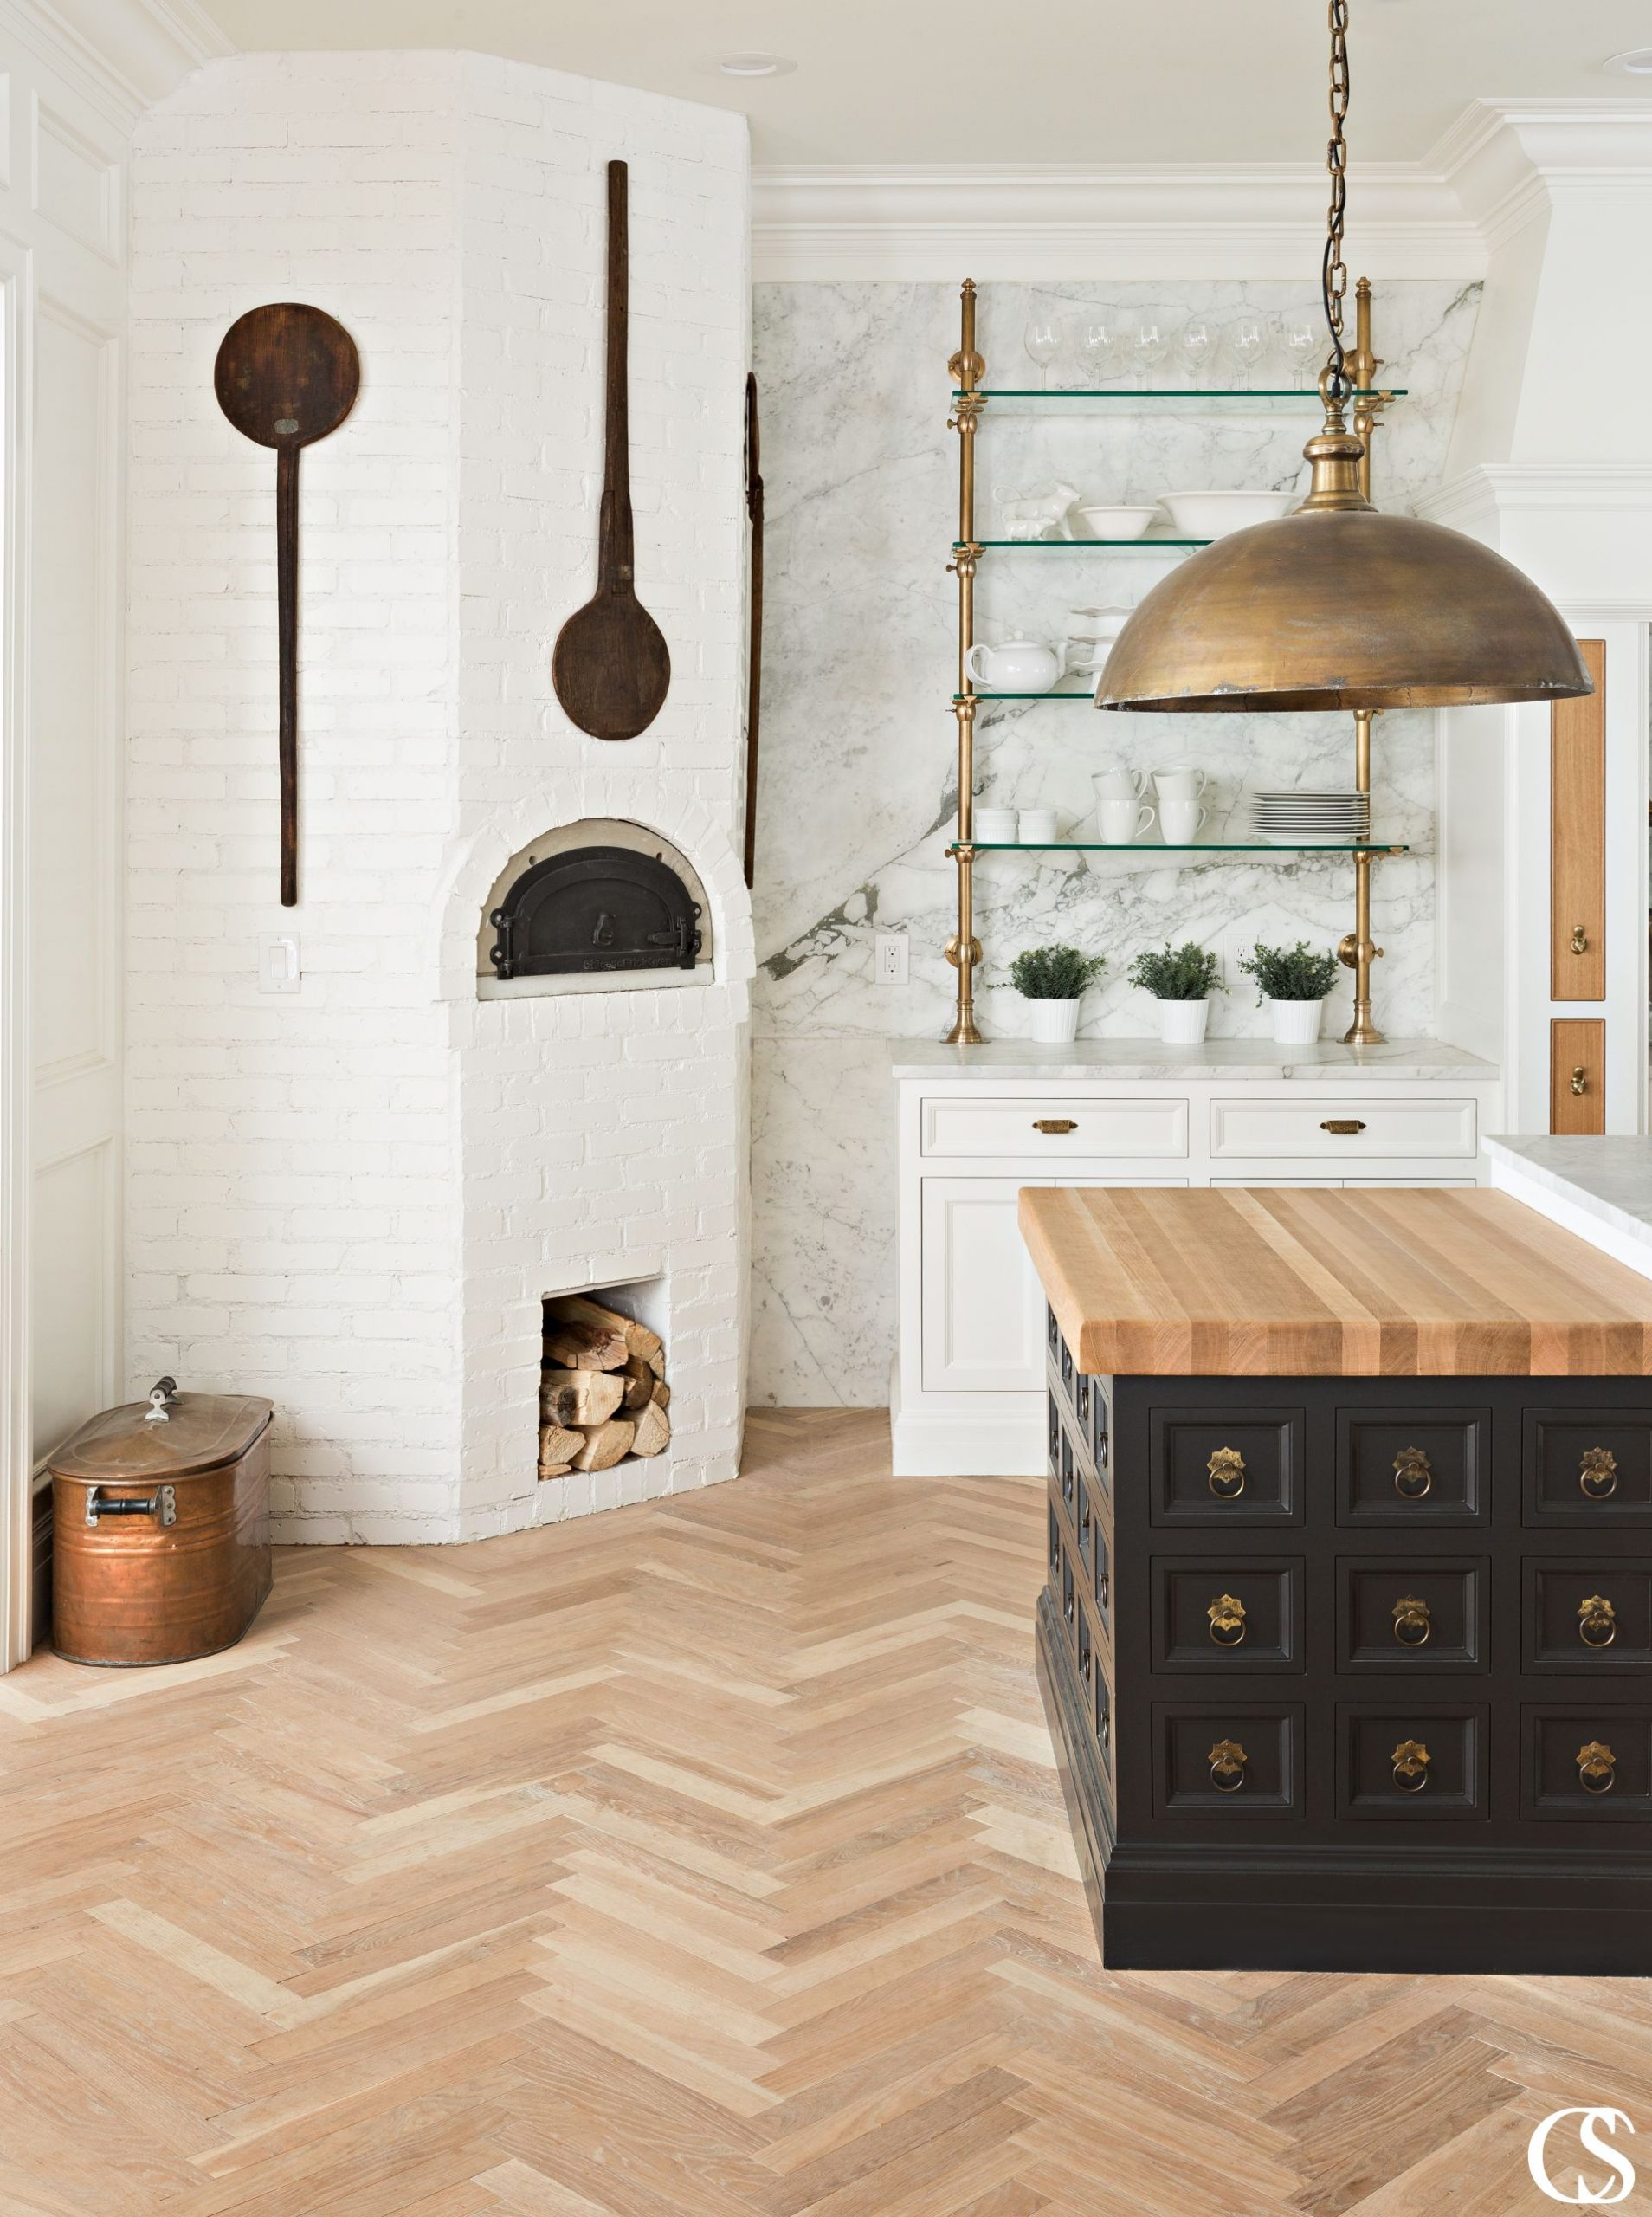 Unique kitchen cabinet designs are all as unique as their homeowners. Want airy, glass open shelving? How about a touch of heat from your own brick pizza oven? Add in warm copper hardware to your black kitchen island and you've got yourself a truly unique and incredibly usable kitchen.